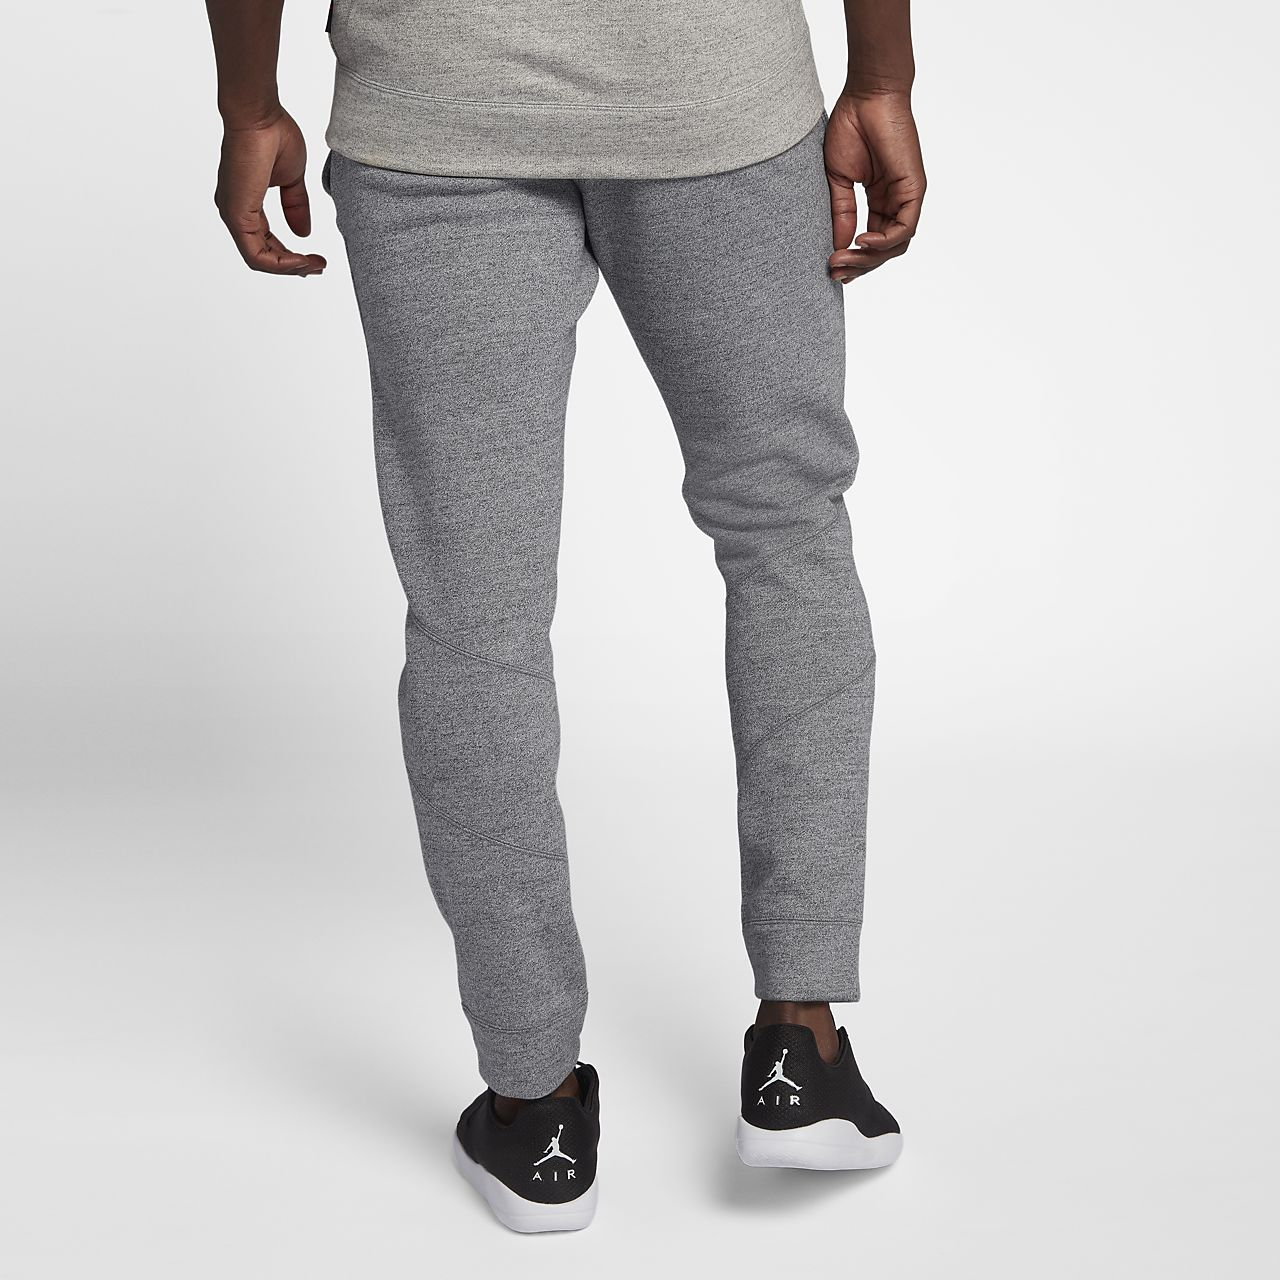 d7ecc374a893 Jordan Lifestyle Wings Men s Fleece Trousers. Nike.com DK